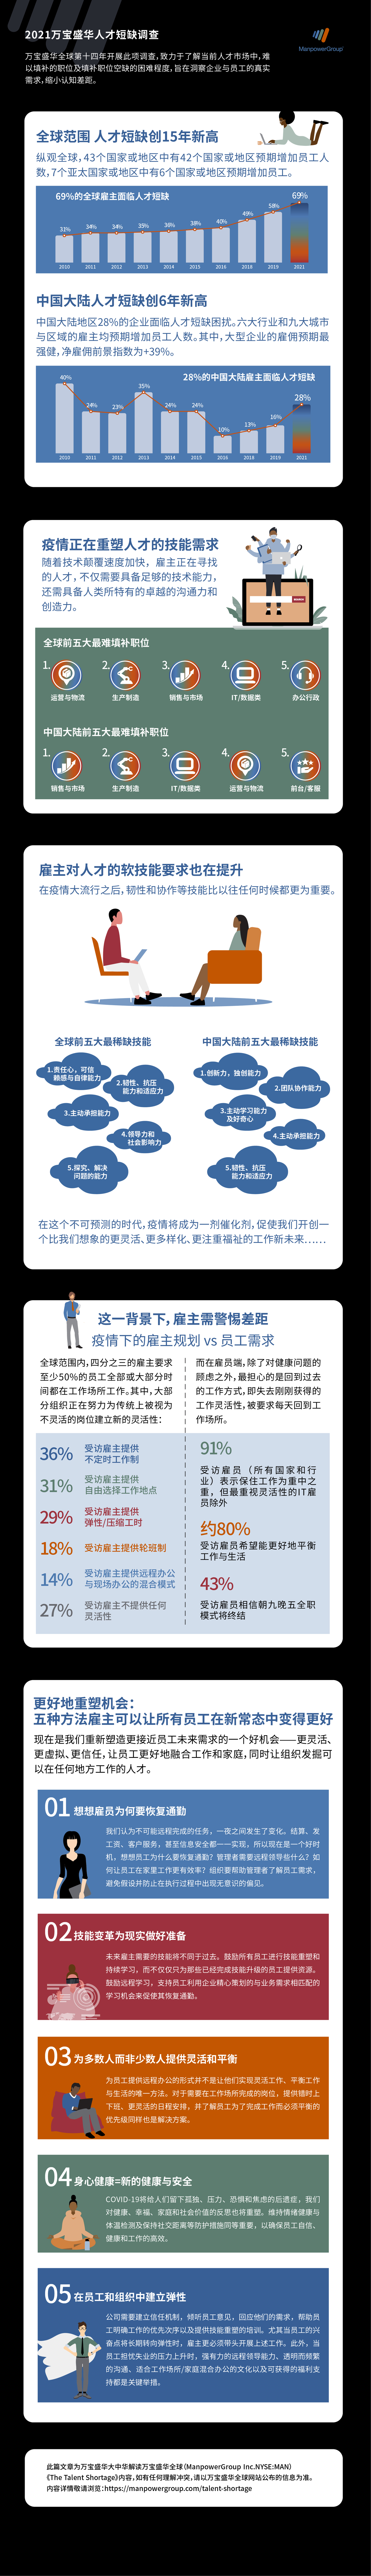 MPG_2021_Outlook_Survery-China-02.jpg